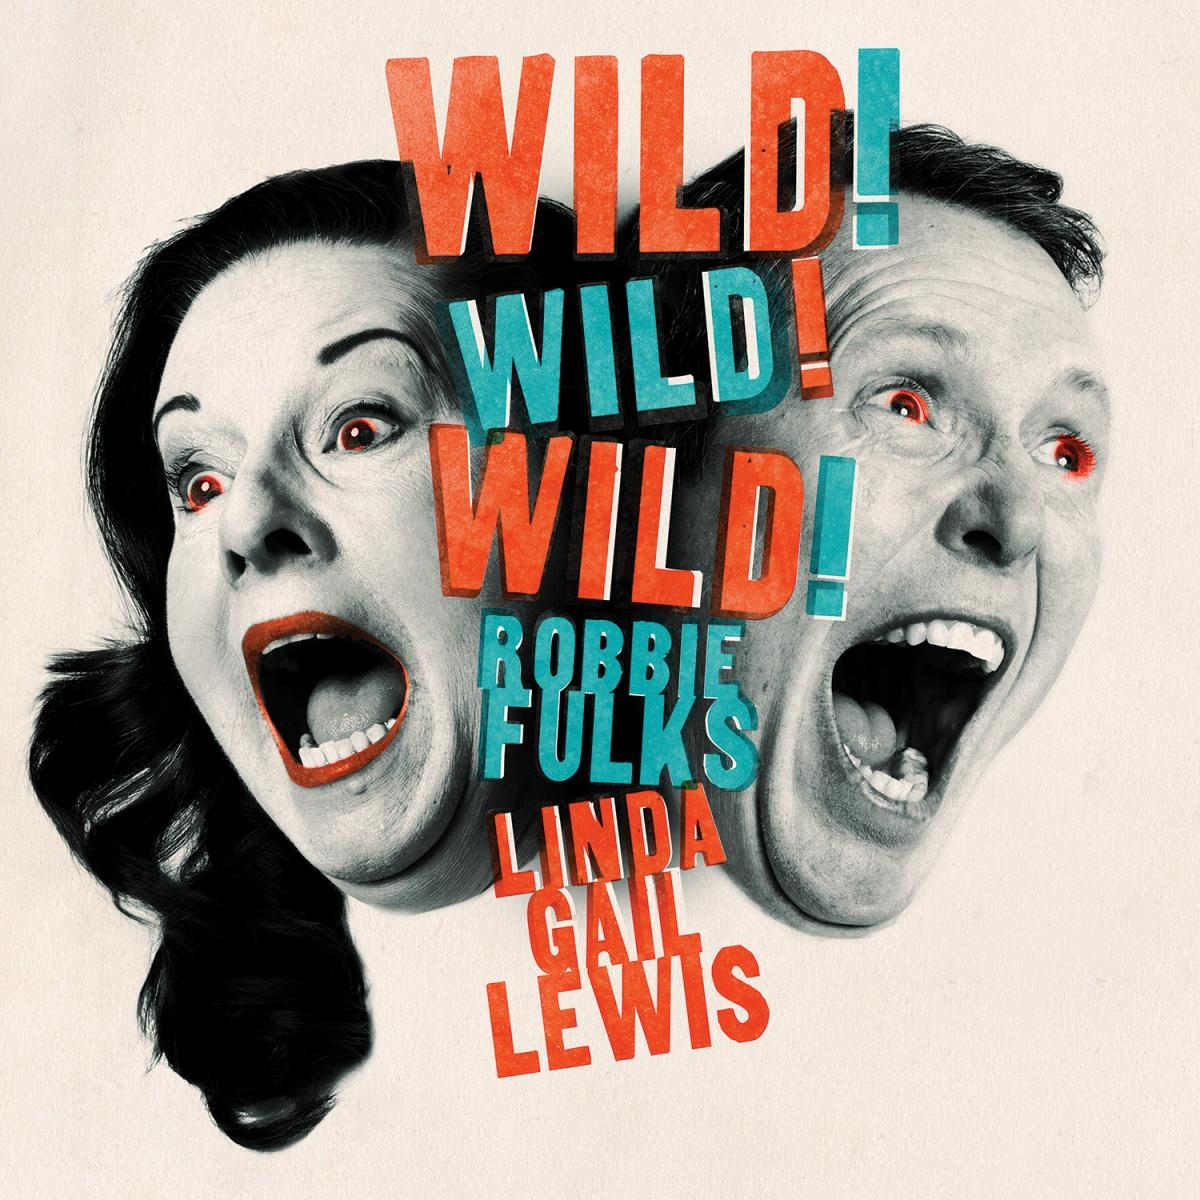 Robbie Fulks And Linda Gail Lewis - Wild! Wild! Wild! album cover